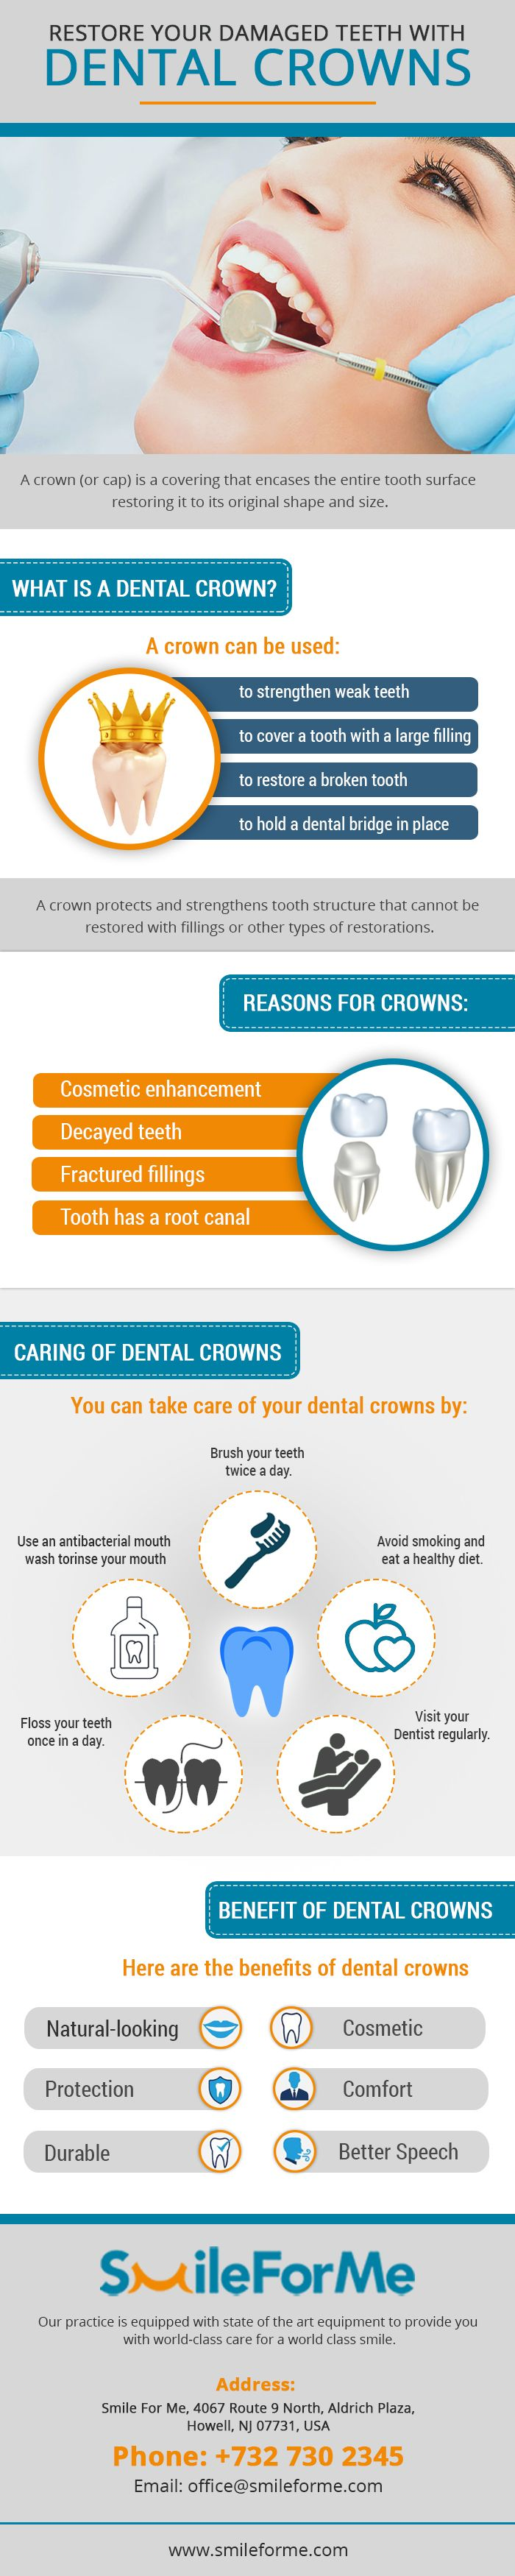 A dental crown is a tooth-shaped 'cap' that is placed over a tooth to cover to restore its shape, size, strength as well as improve appearance. There are different types of dental crowns; however, porcelain is the popular choice as it resembles the natural look. To refurbish your teeth with this treatment, choose the professionals of Smile for Me. We will help you to get the desired look. For further query, feel free to contact us.